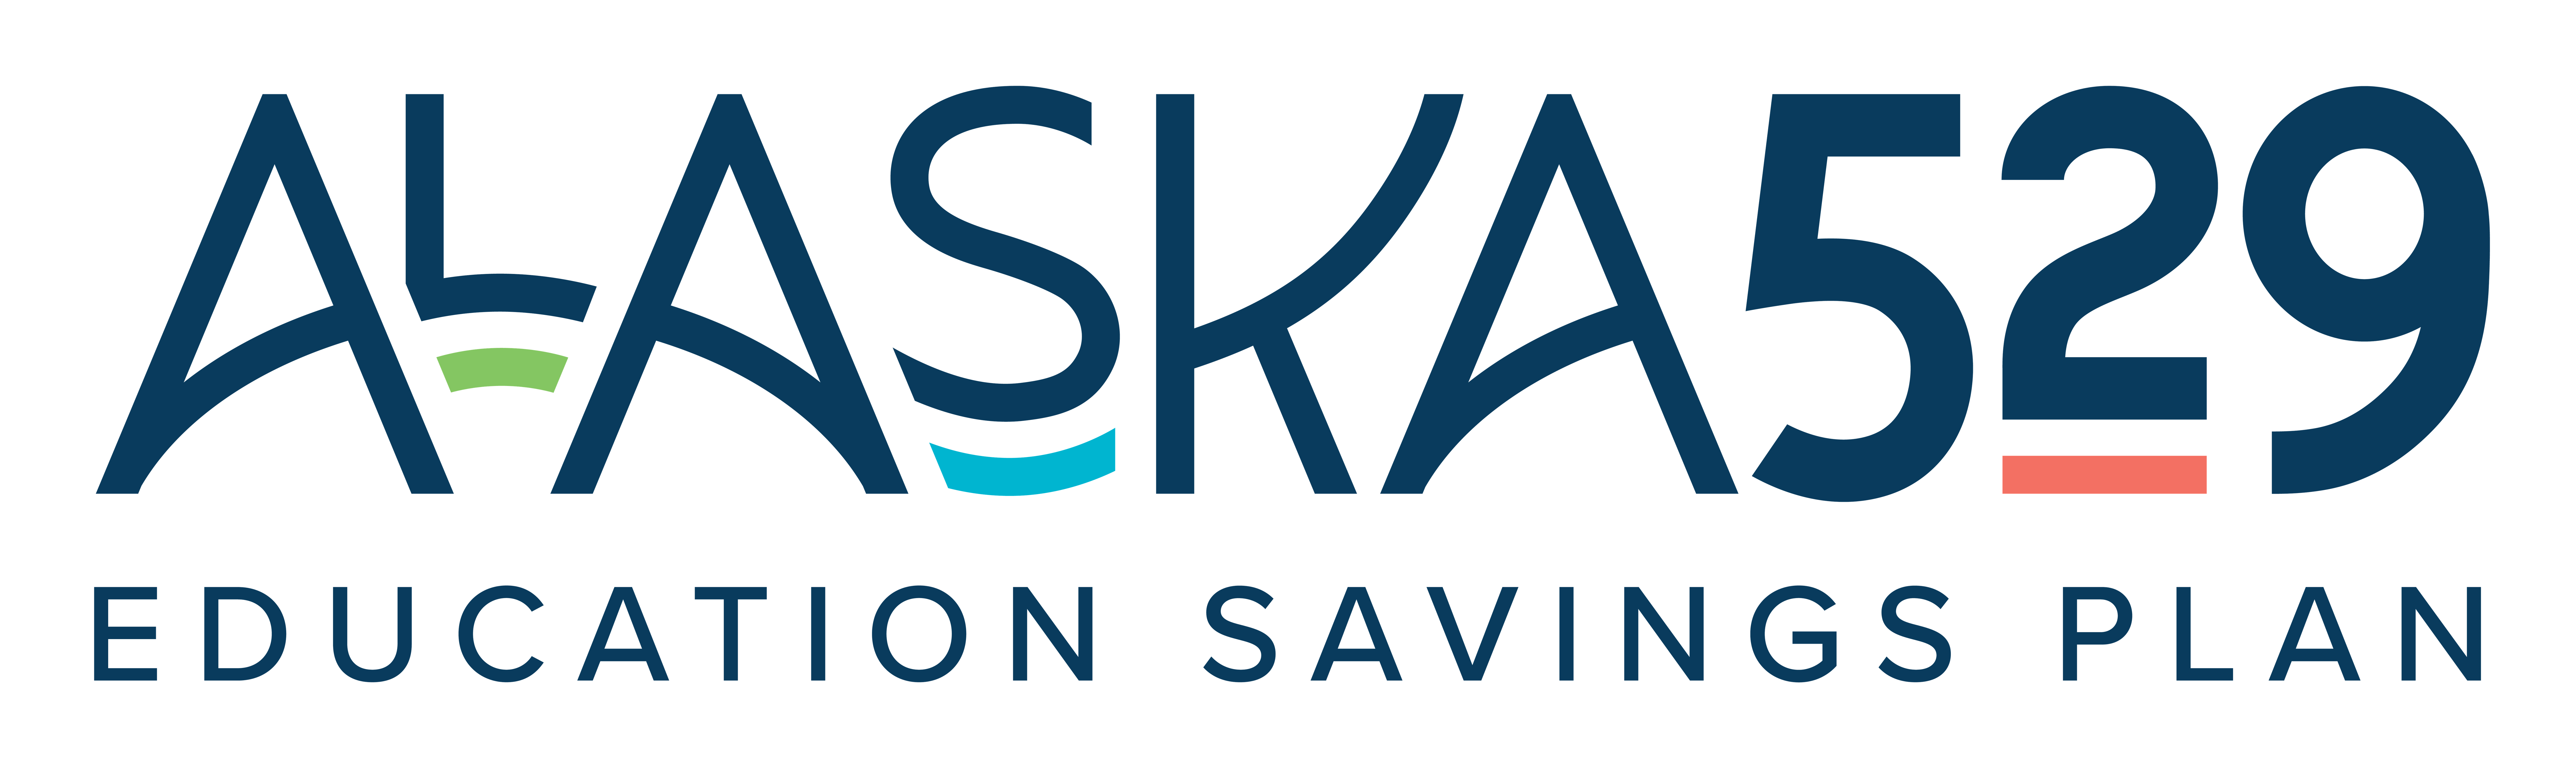 The University of Alaska College Savings Plan Logo